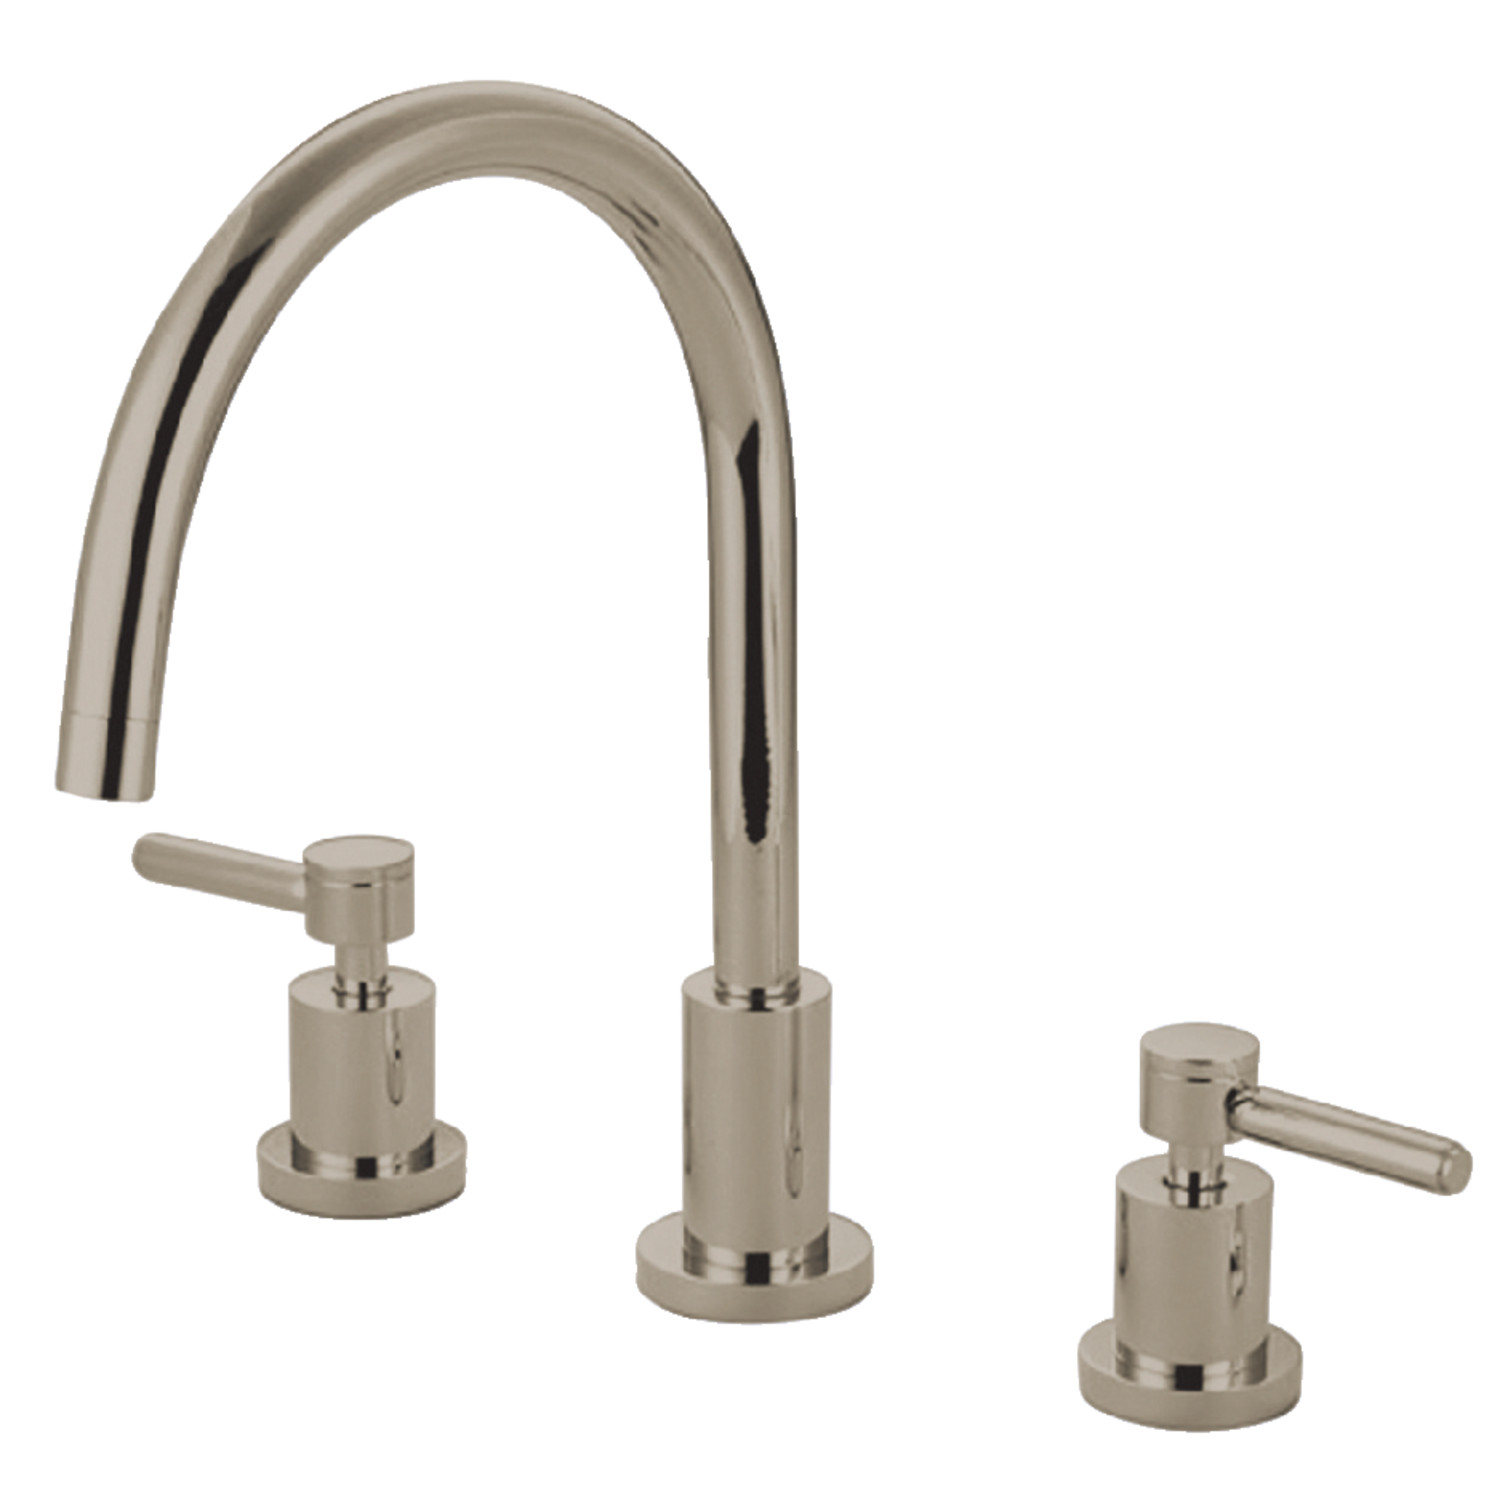 Elements of Design ES8726DLLS 8-Inch Widespread Kitchen Faucet, Polished  Nickel